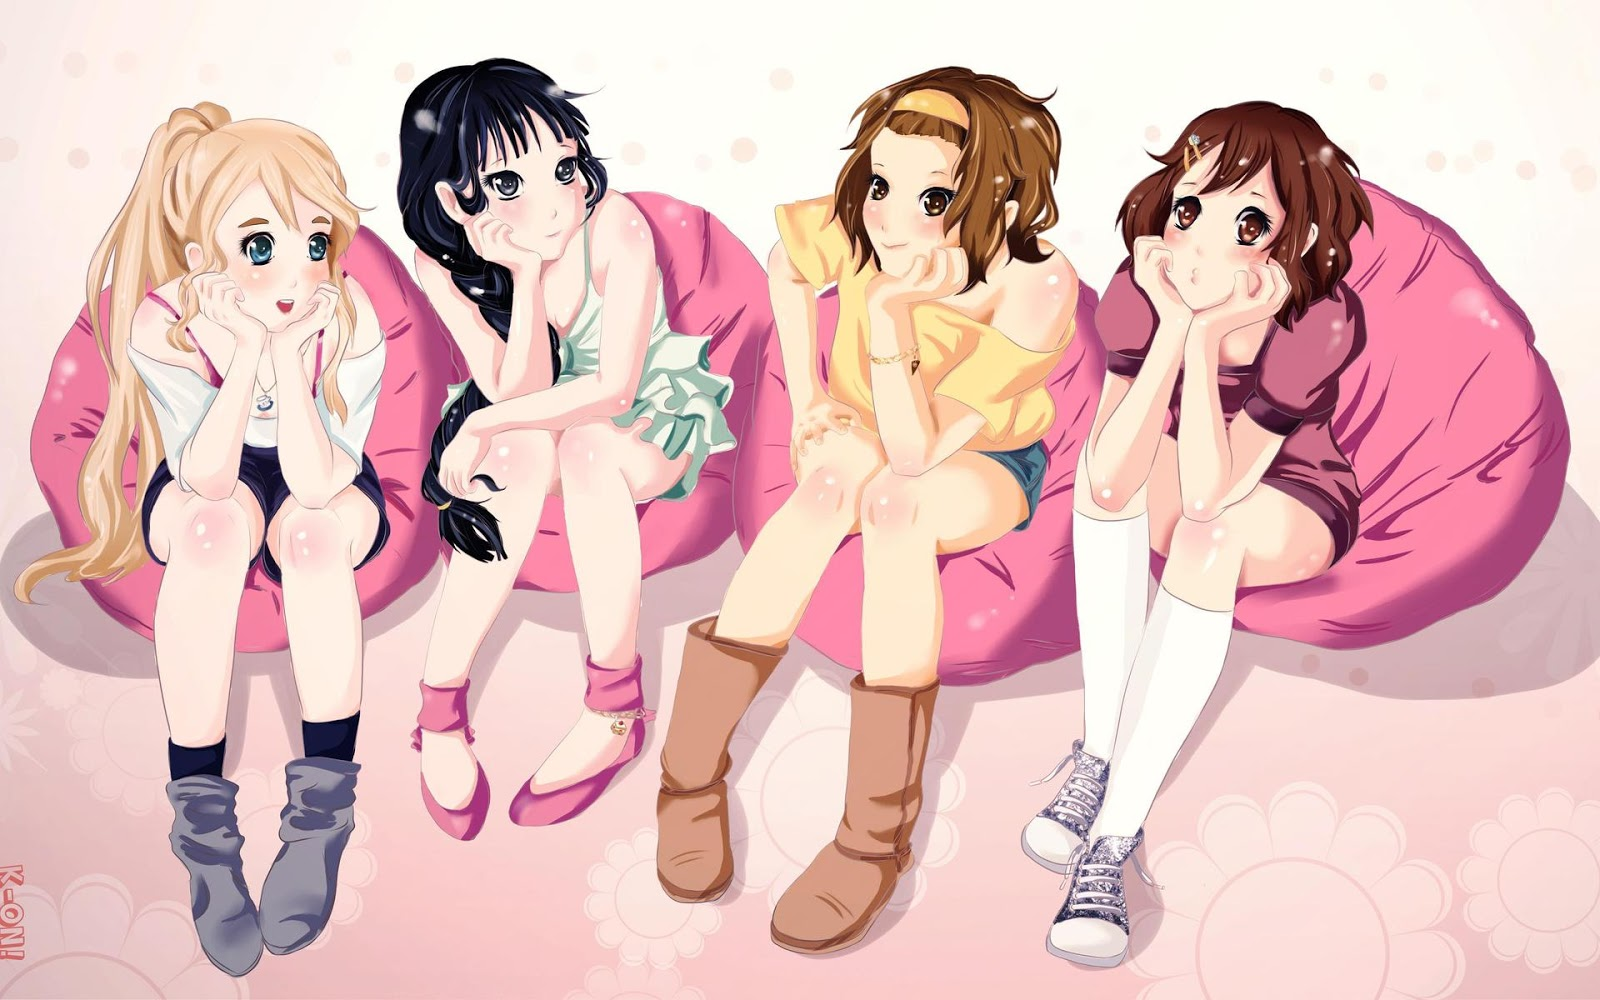 http://4.bp.blogspot.com/-Y6fmCMoSGpY/UIoA30iUcfI/AAAAAAAABTo/je5i1iprNAE/s1600/k-on-wallpaper-anime-girl-girlfriend-friends-group.jpg